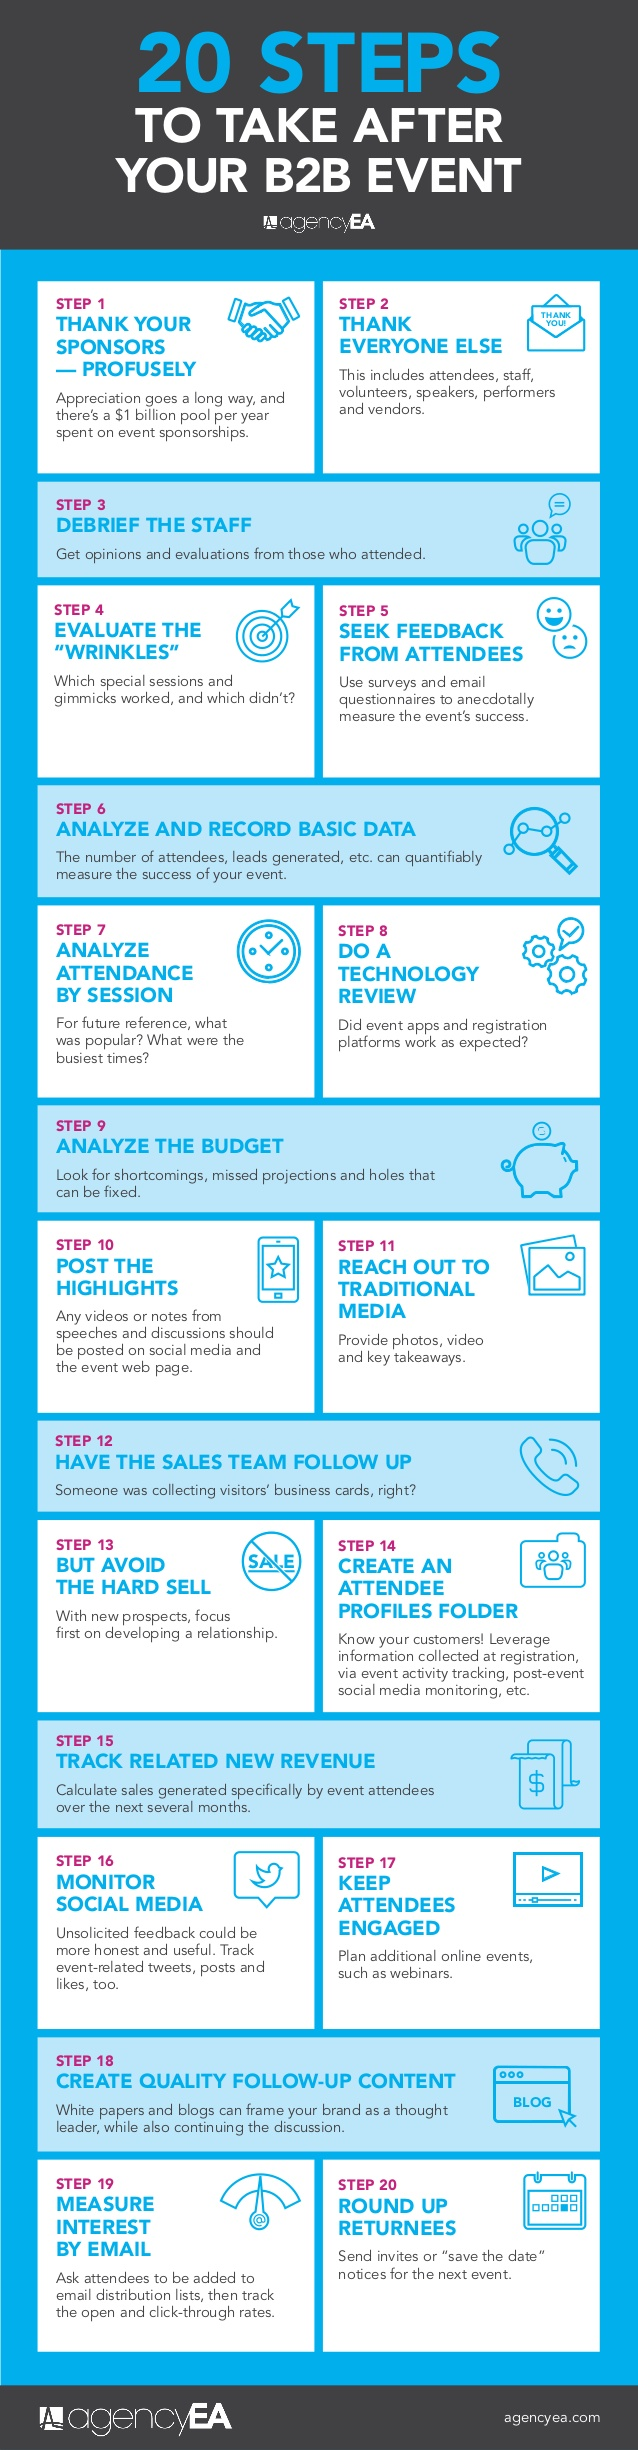 steps to take after your b2b event